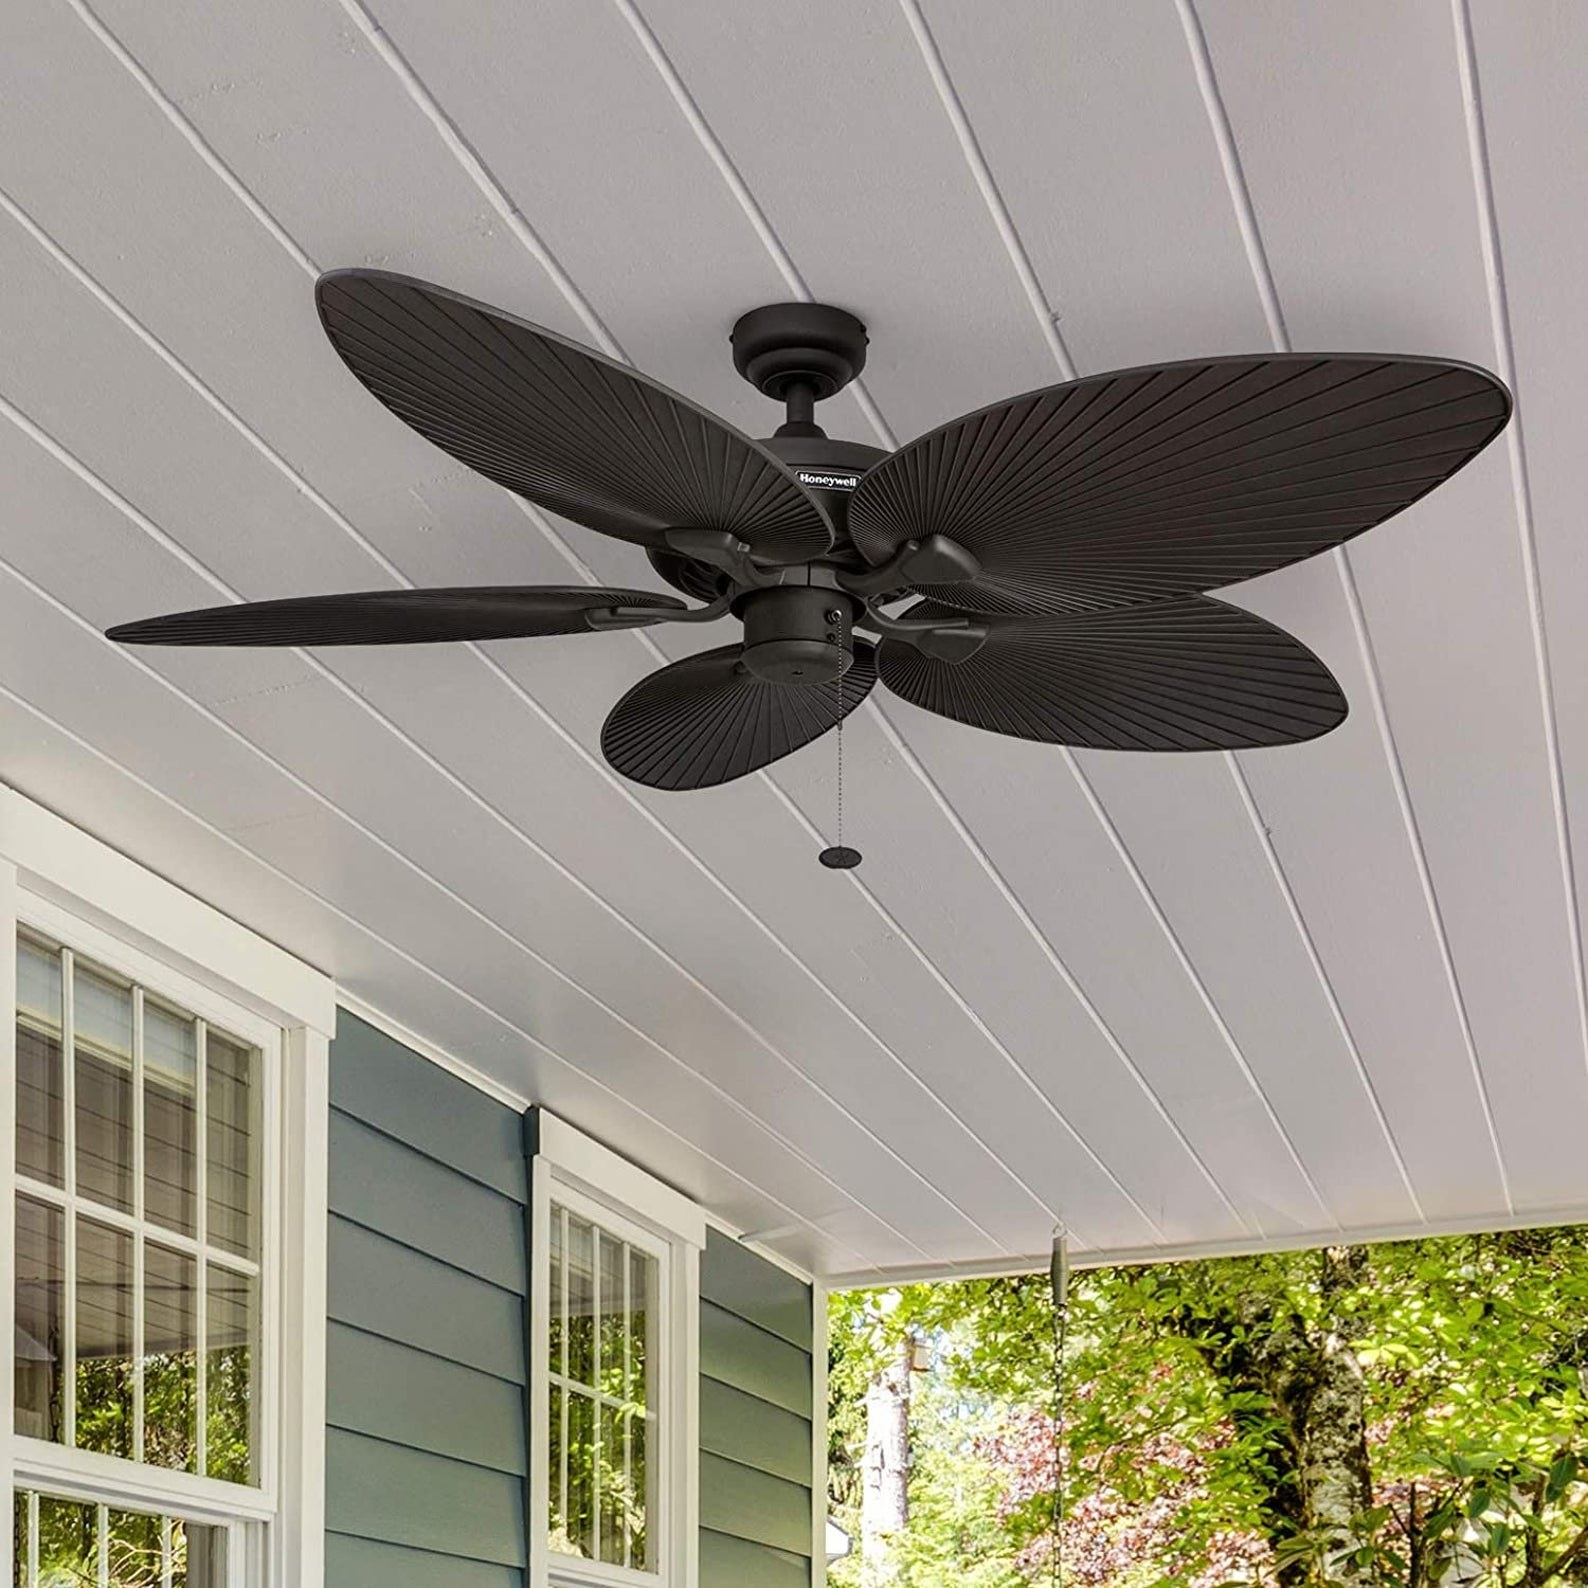 the five palm leaf ceiling fan installed in a roofed outdoor patio